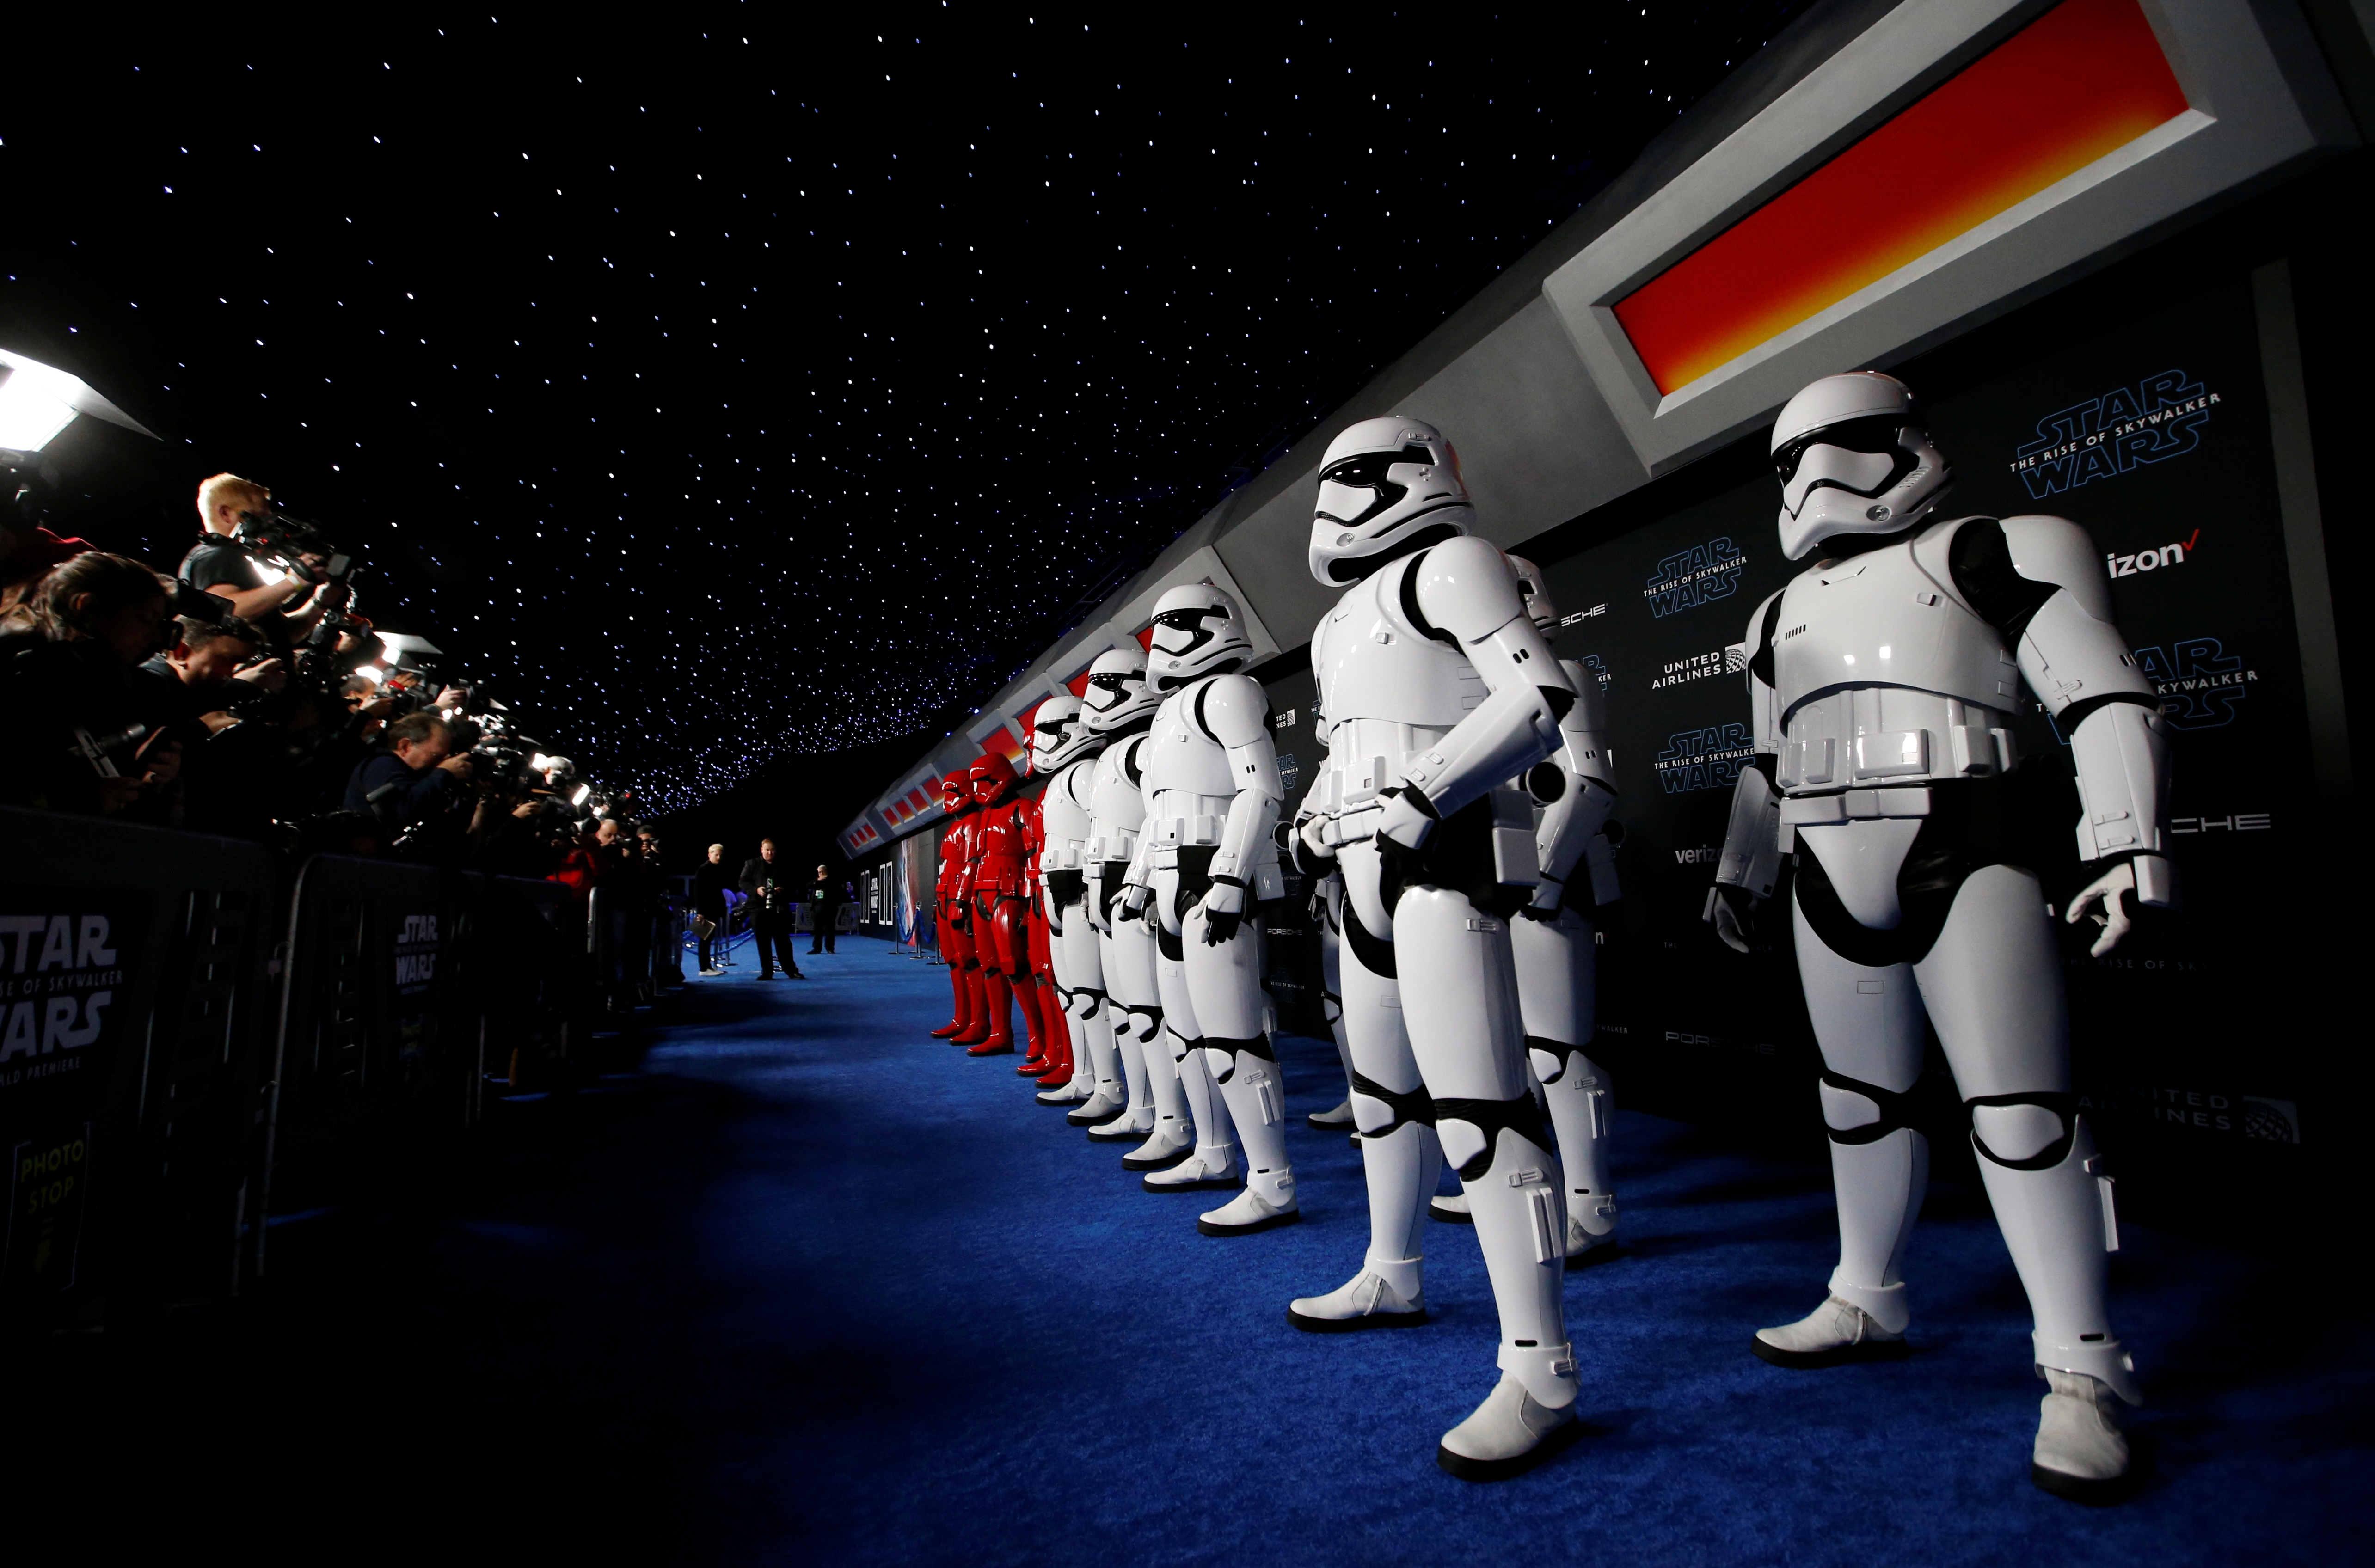 Stormtroopers (Foto: REUTERS/Mario Anzuoni)